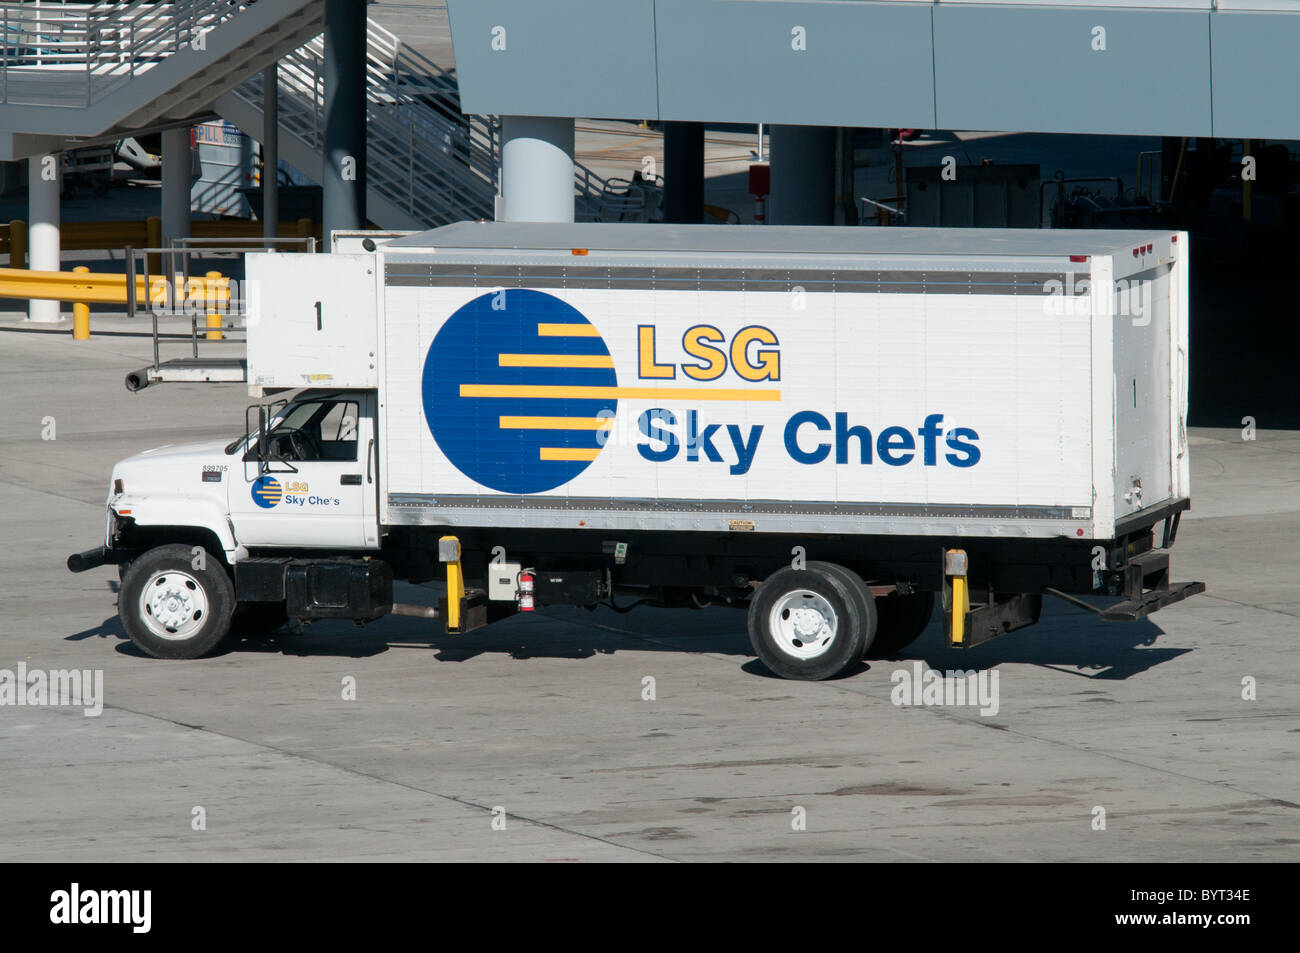 Thomson Inflight Meals >> LSG Sky Chefs airline catering truck airside at McCarran Stock Photo, Royalty Free Image ...